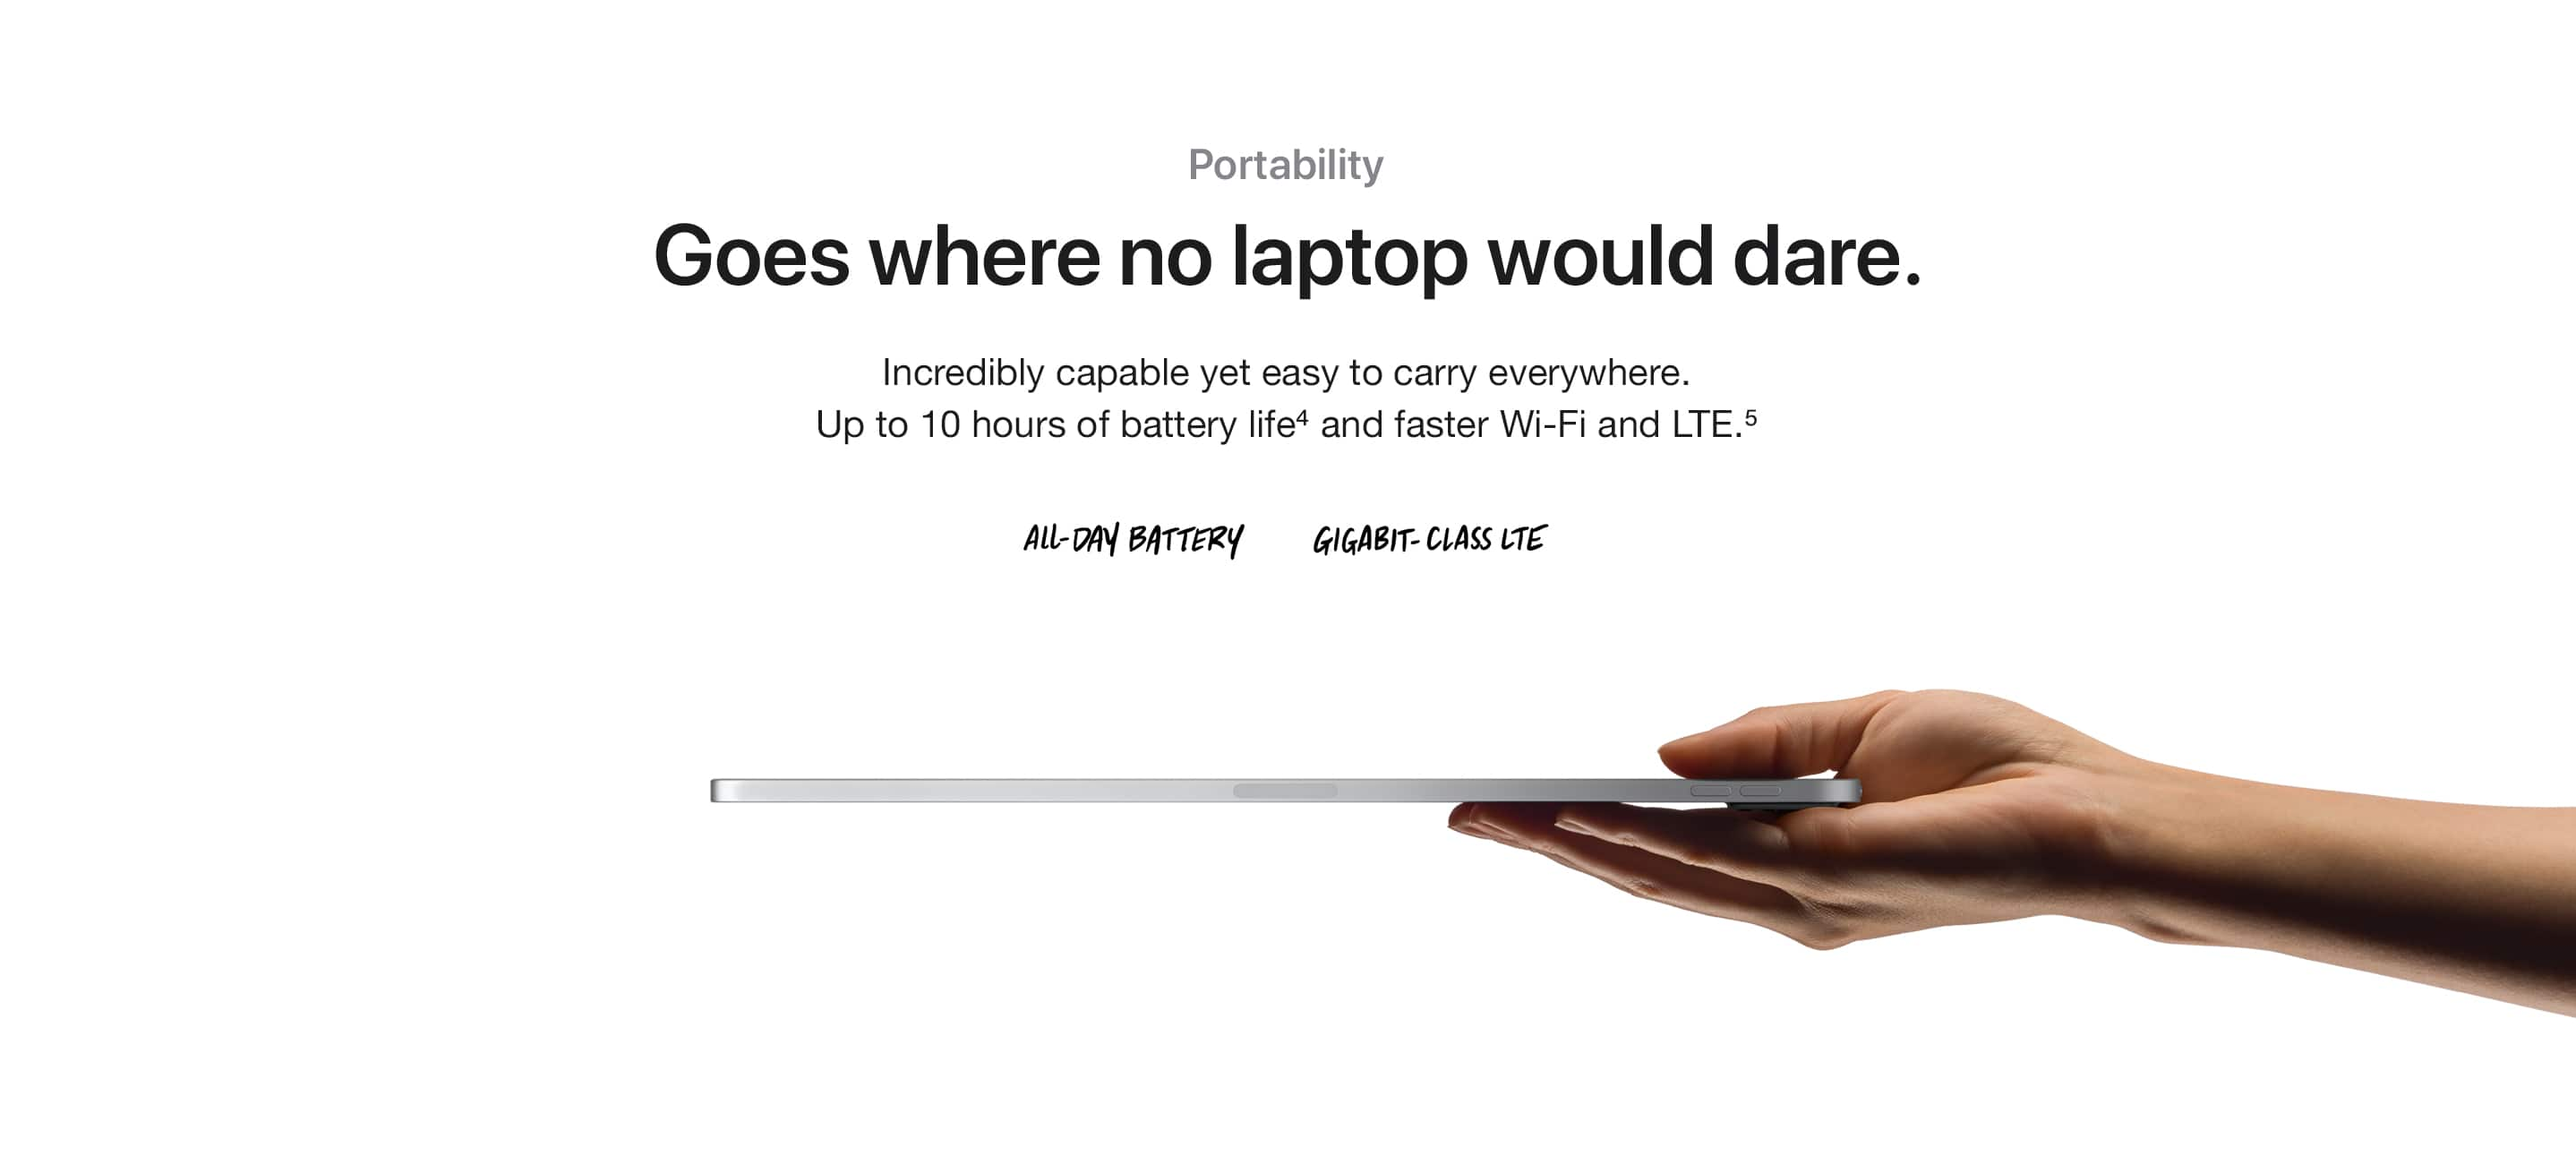 Portability. Goes where no laptop would dare. Incredibly capable yet easy to carry everywhere. Up to 10 hours of battery life(4) and faster Wi-Fi and LTE.(5) ALL-DAY BATTERY, GIGABIT-CLASS LTE.